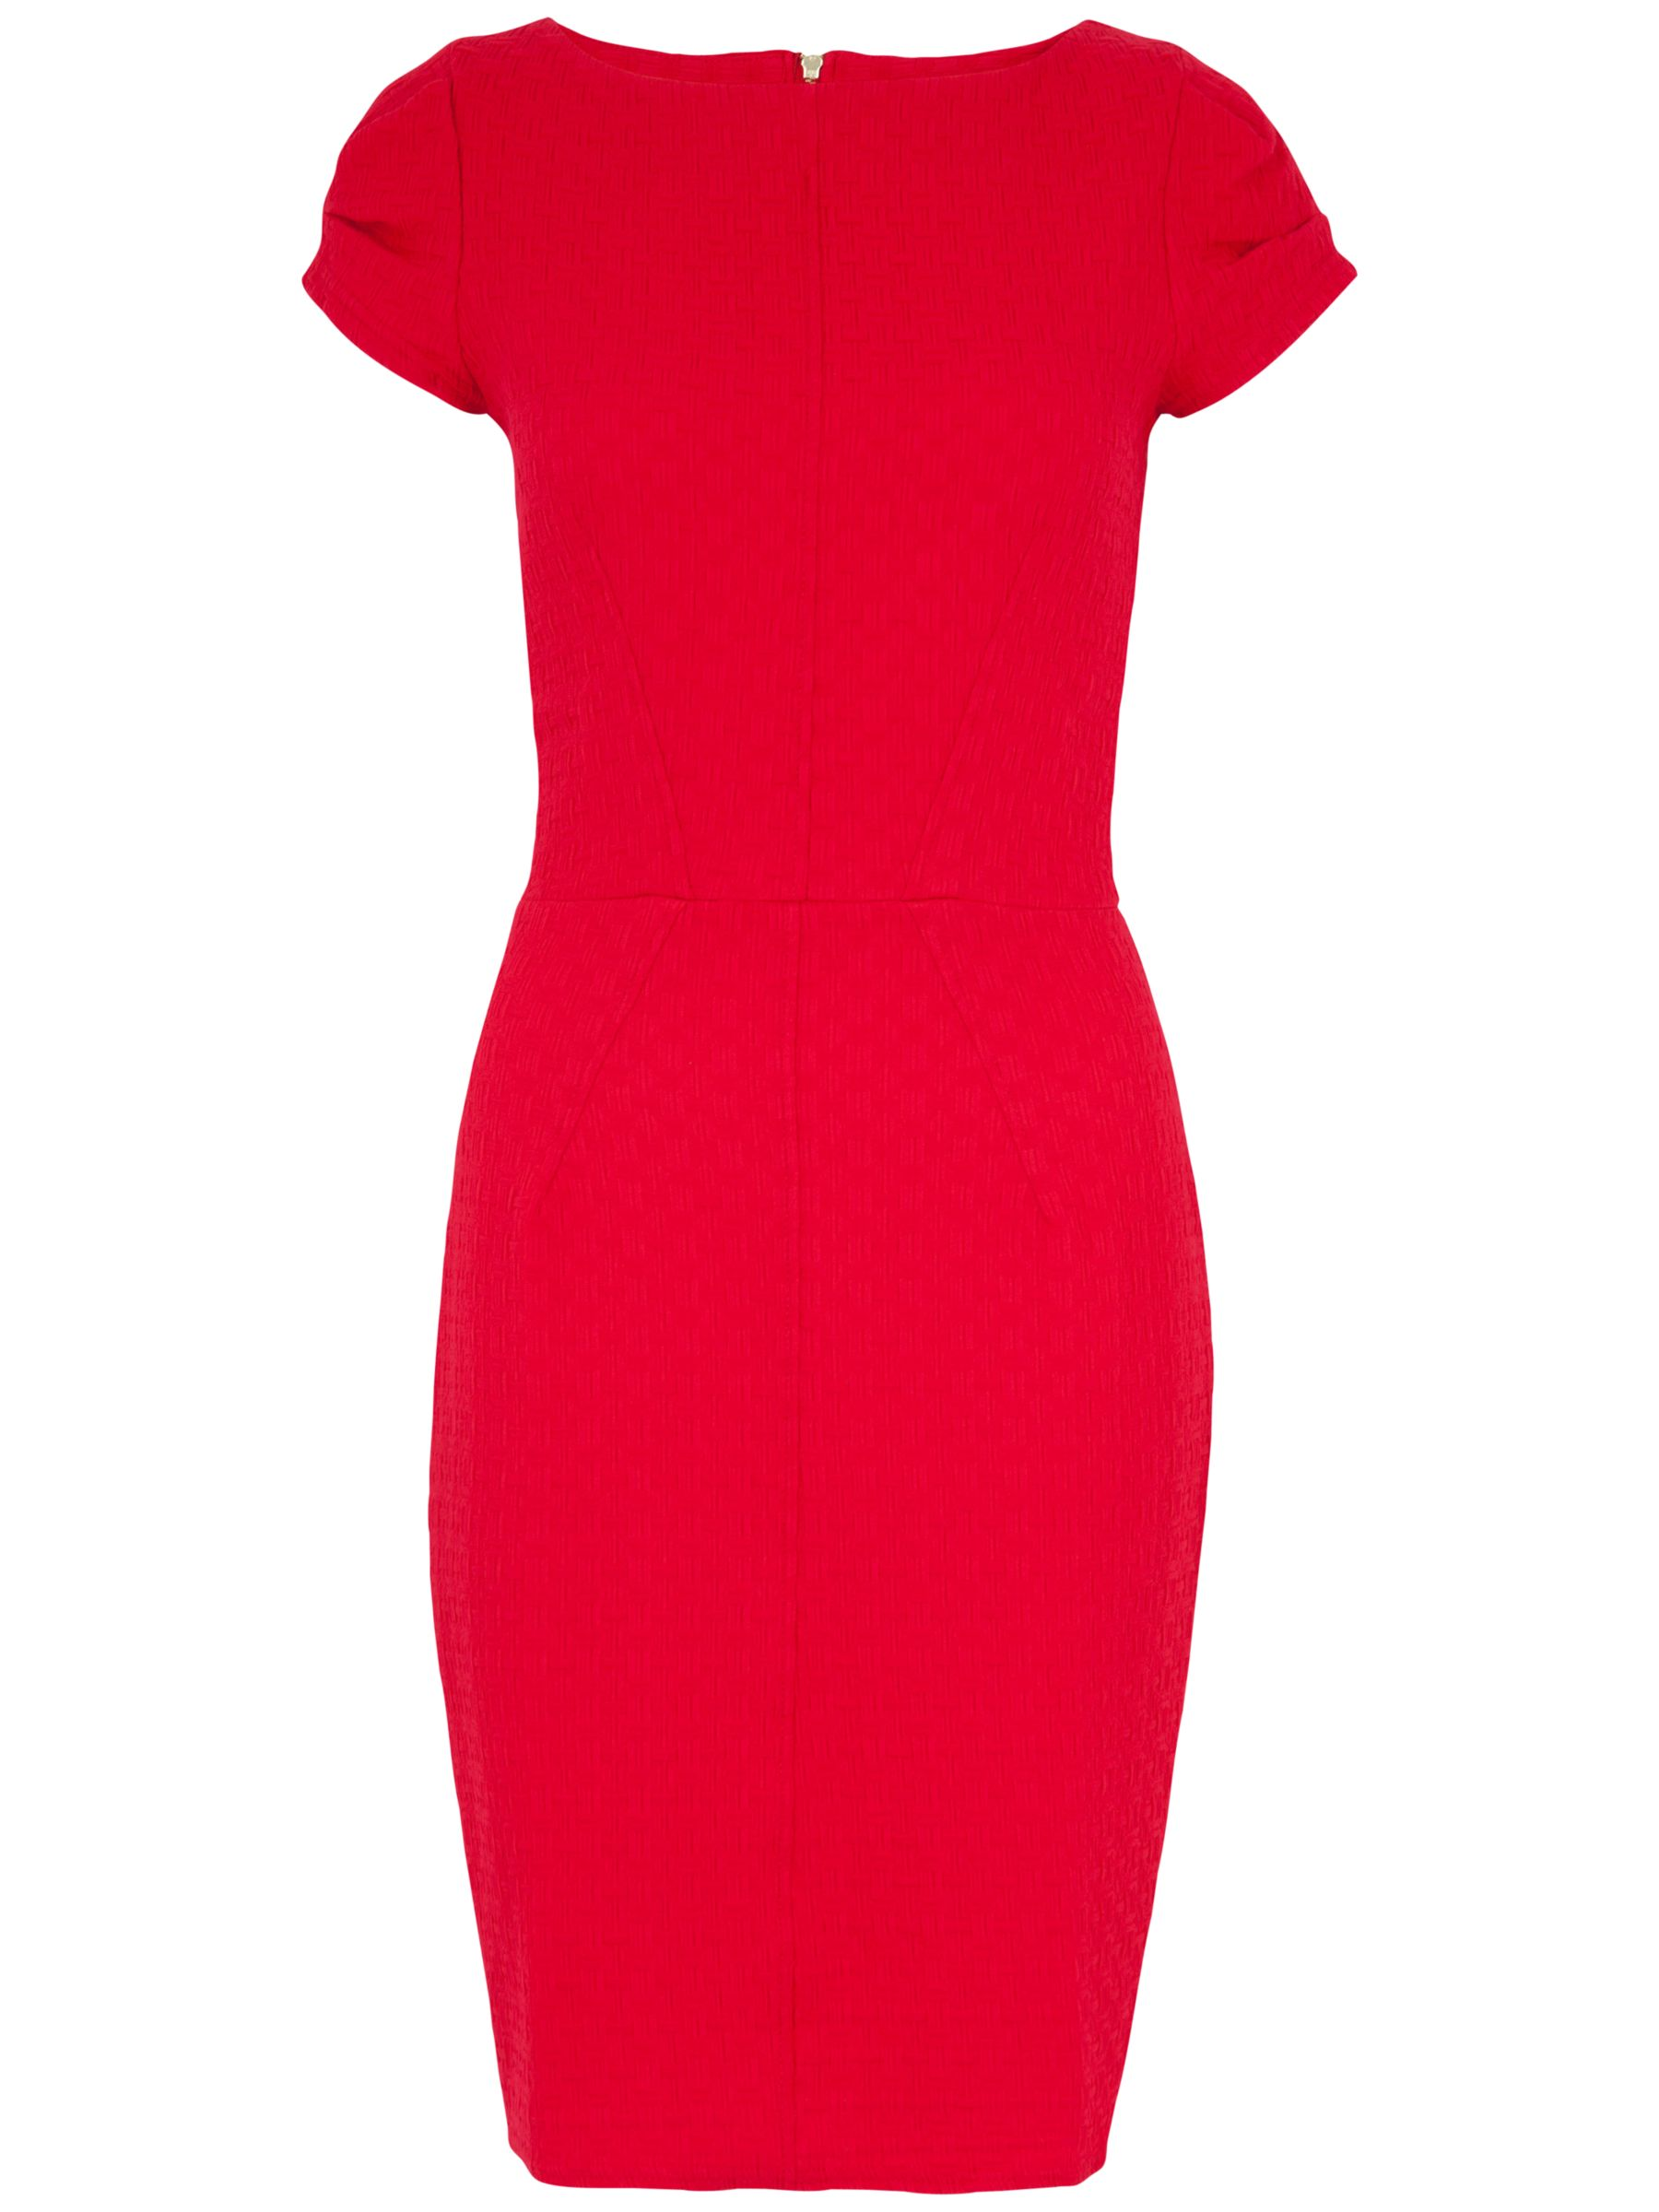 closet waffle bodycon dress red, closet, waffle, bodycon, dress, red, 12|10|14|8, women, womens dresses, party outfits, party dresses, gifts, valentines day, red dress, 1739764